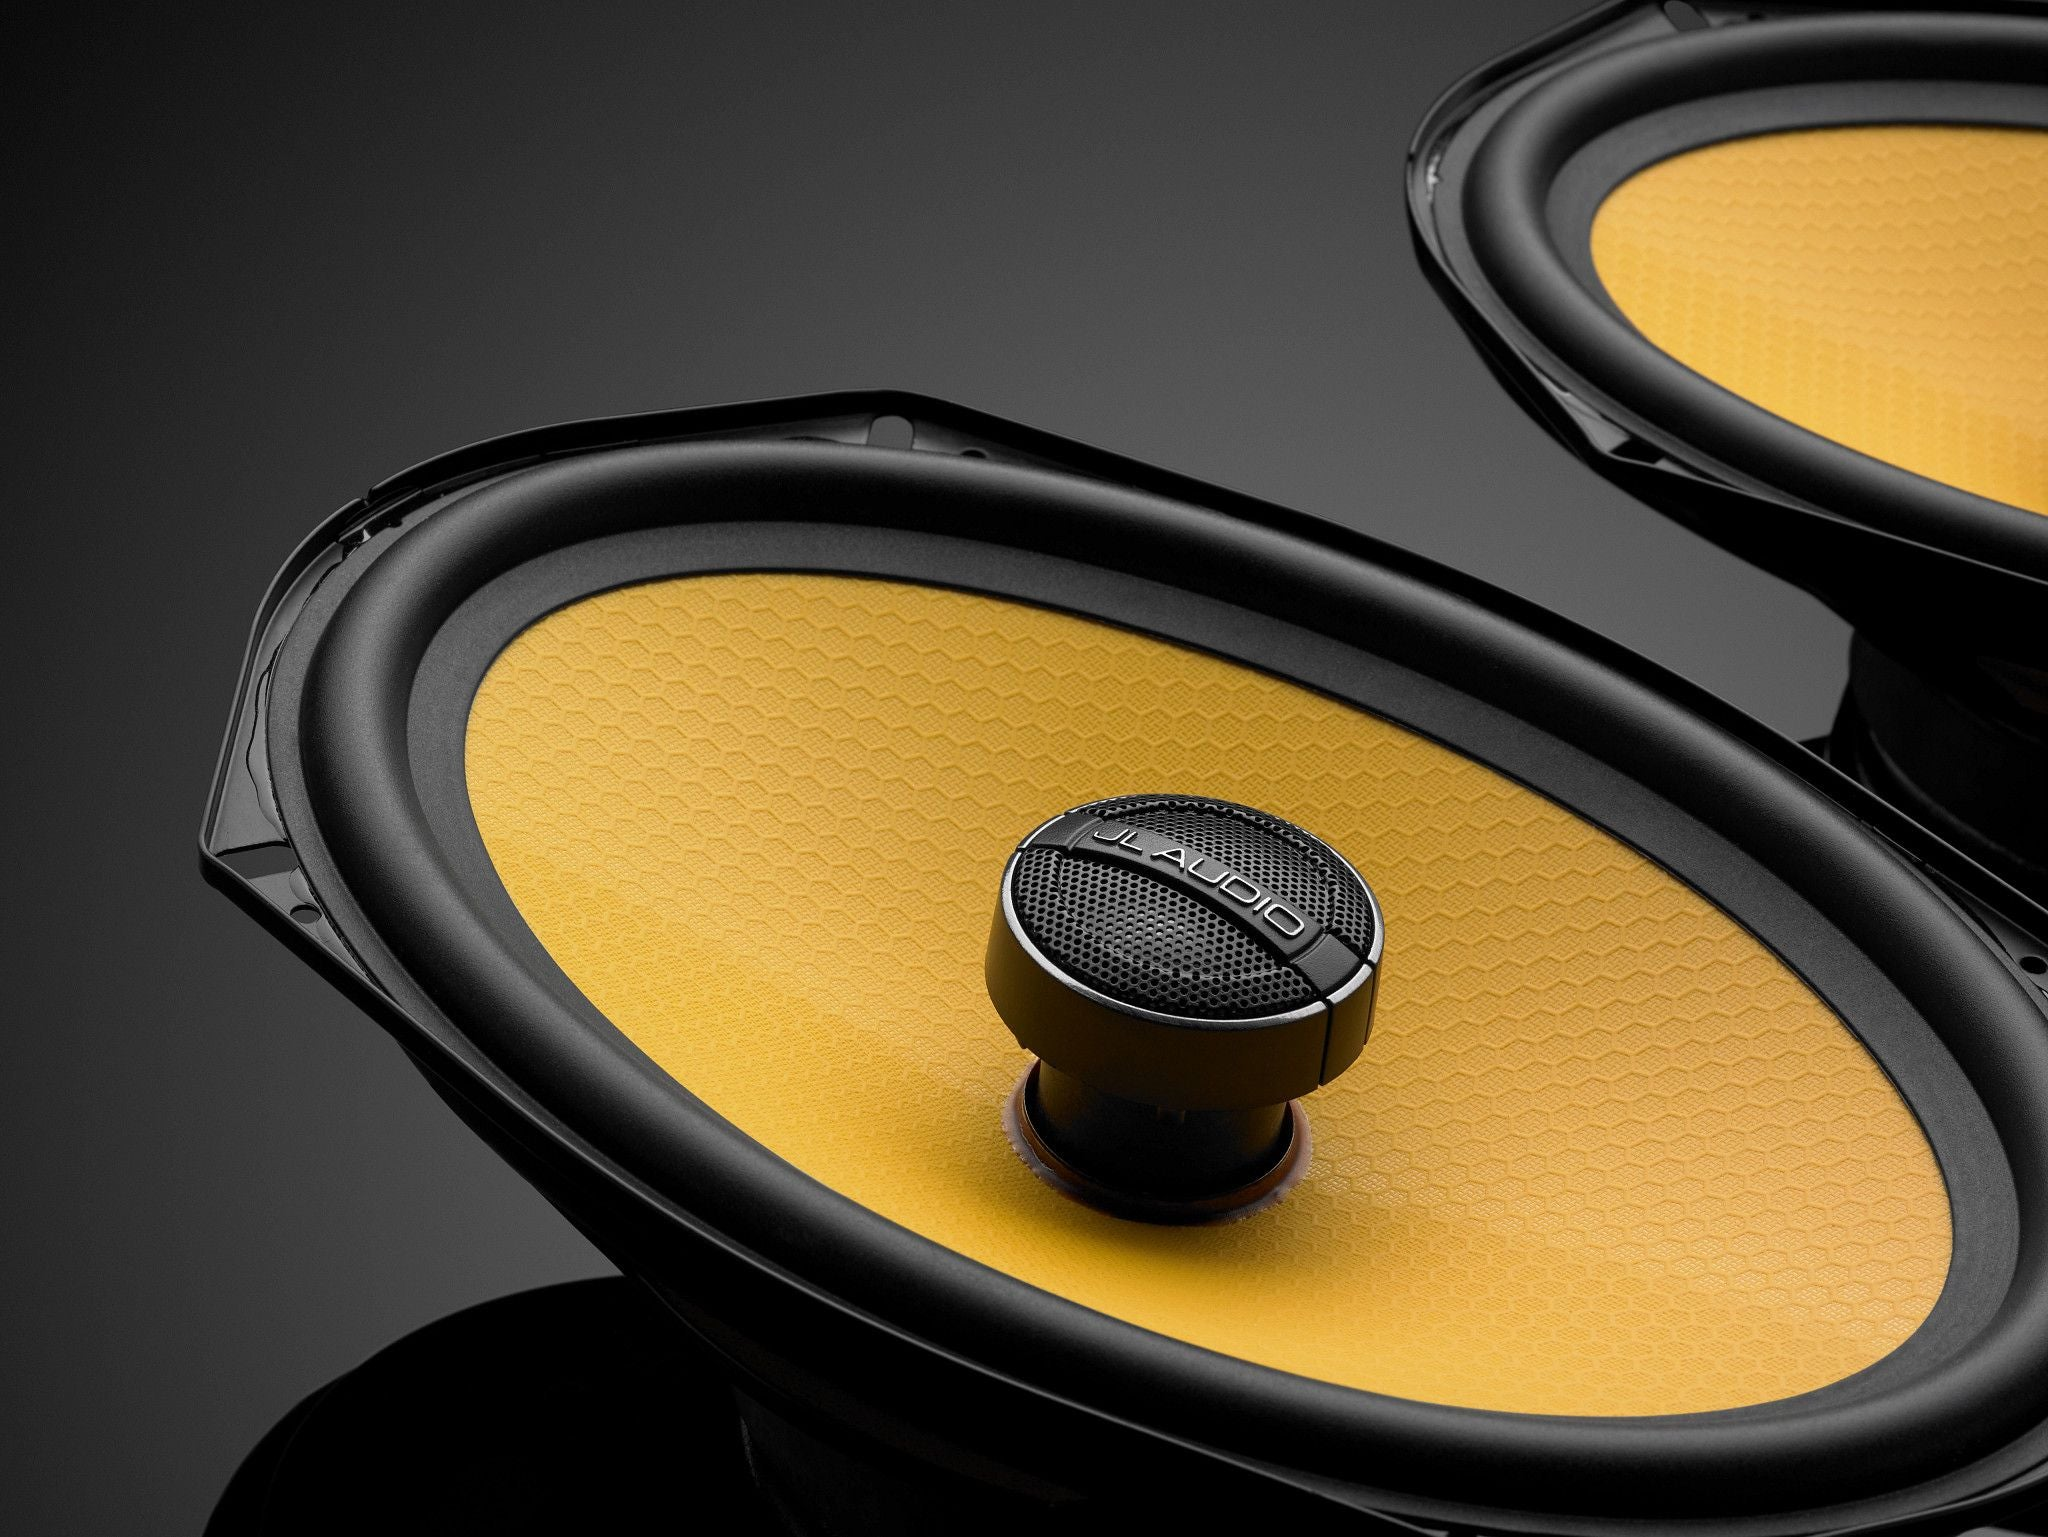 Detail of C1-690x Coaxial Speakers